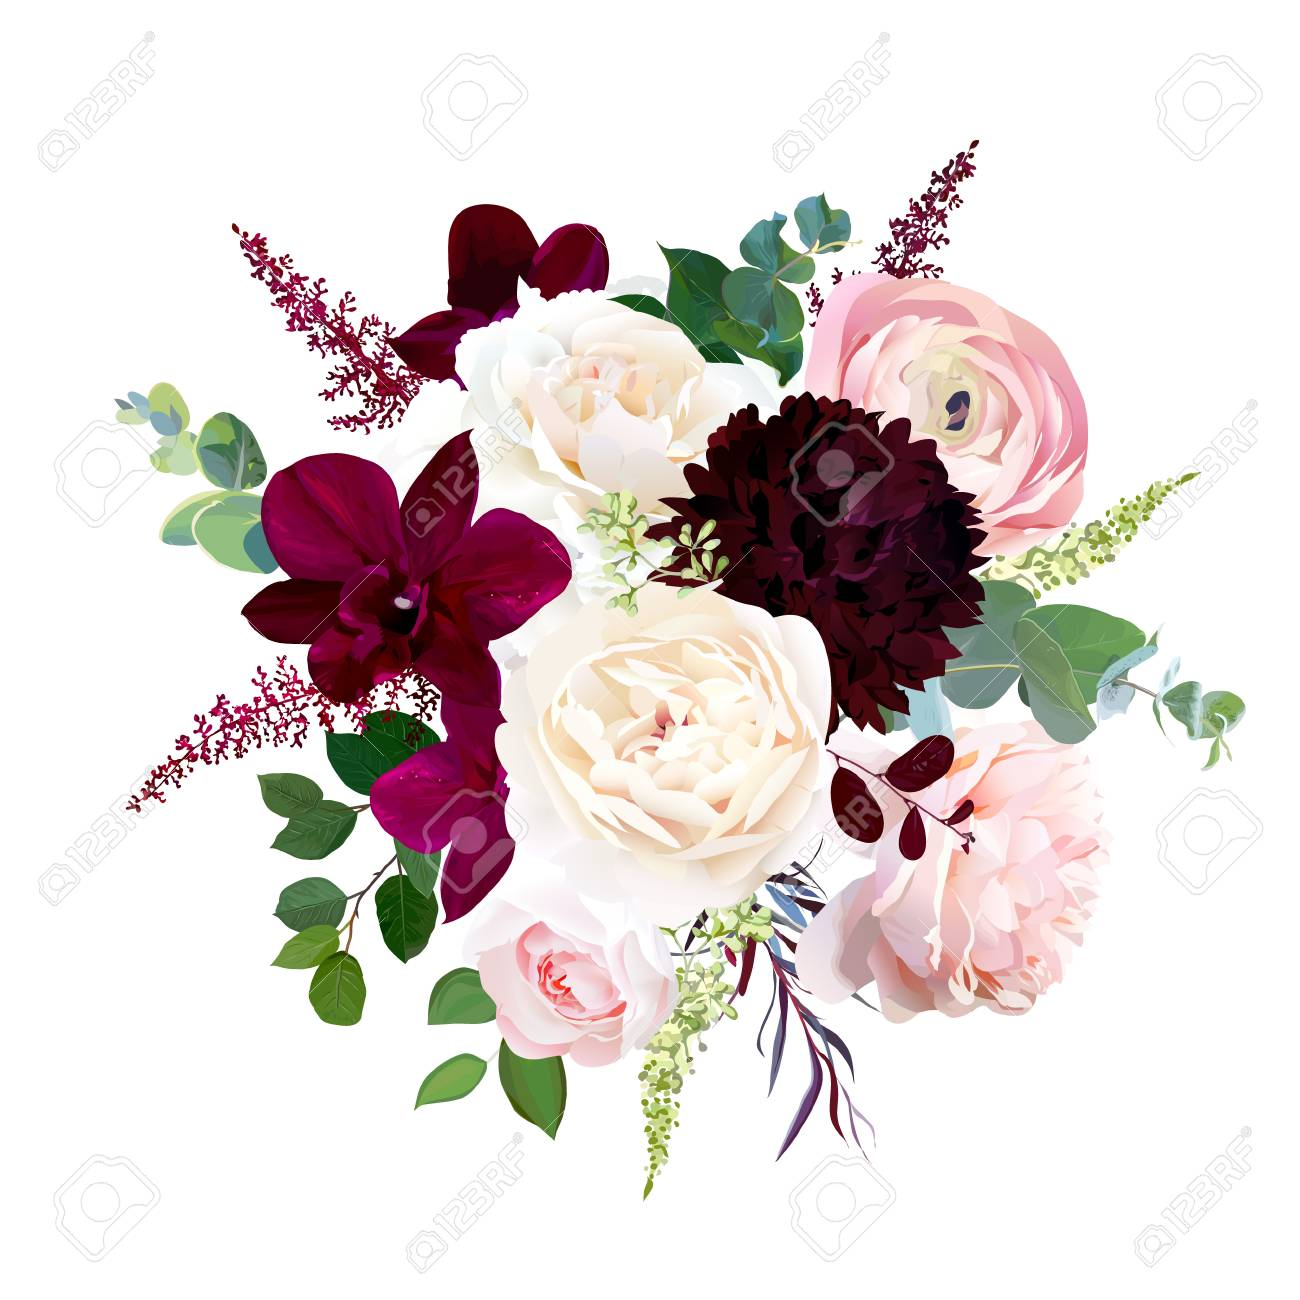 Luxury fall flowers vector bouquet. Dark orchid, garden rose, burgundy red dahlia, ranunculus, astilbe, agonis, seeded eucalyptus and greenery. Autumn wedding bunch of flowers. Isolated and editable. - 110125018